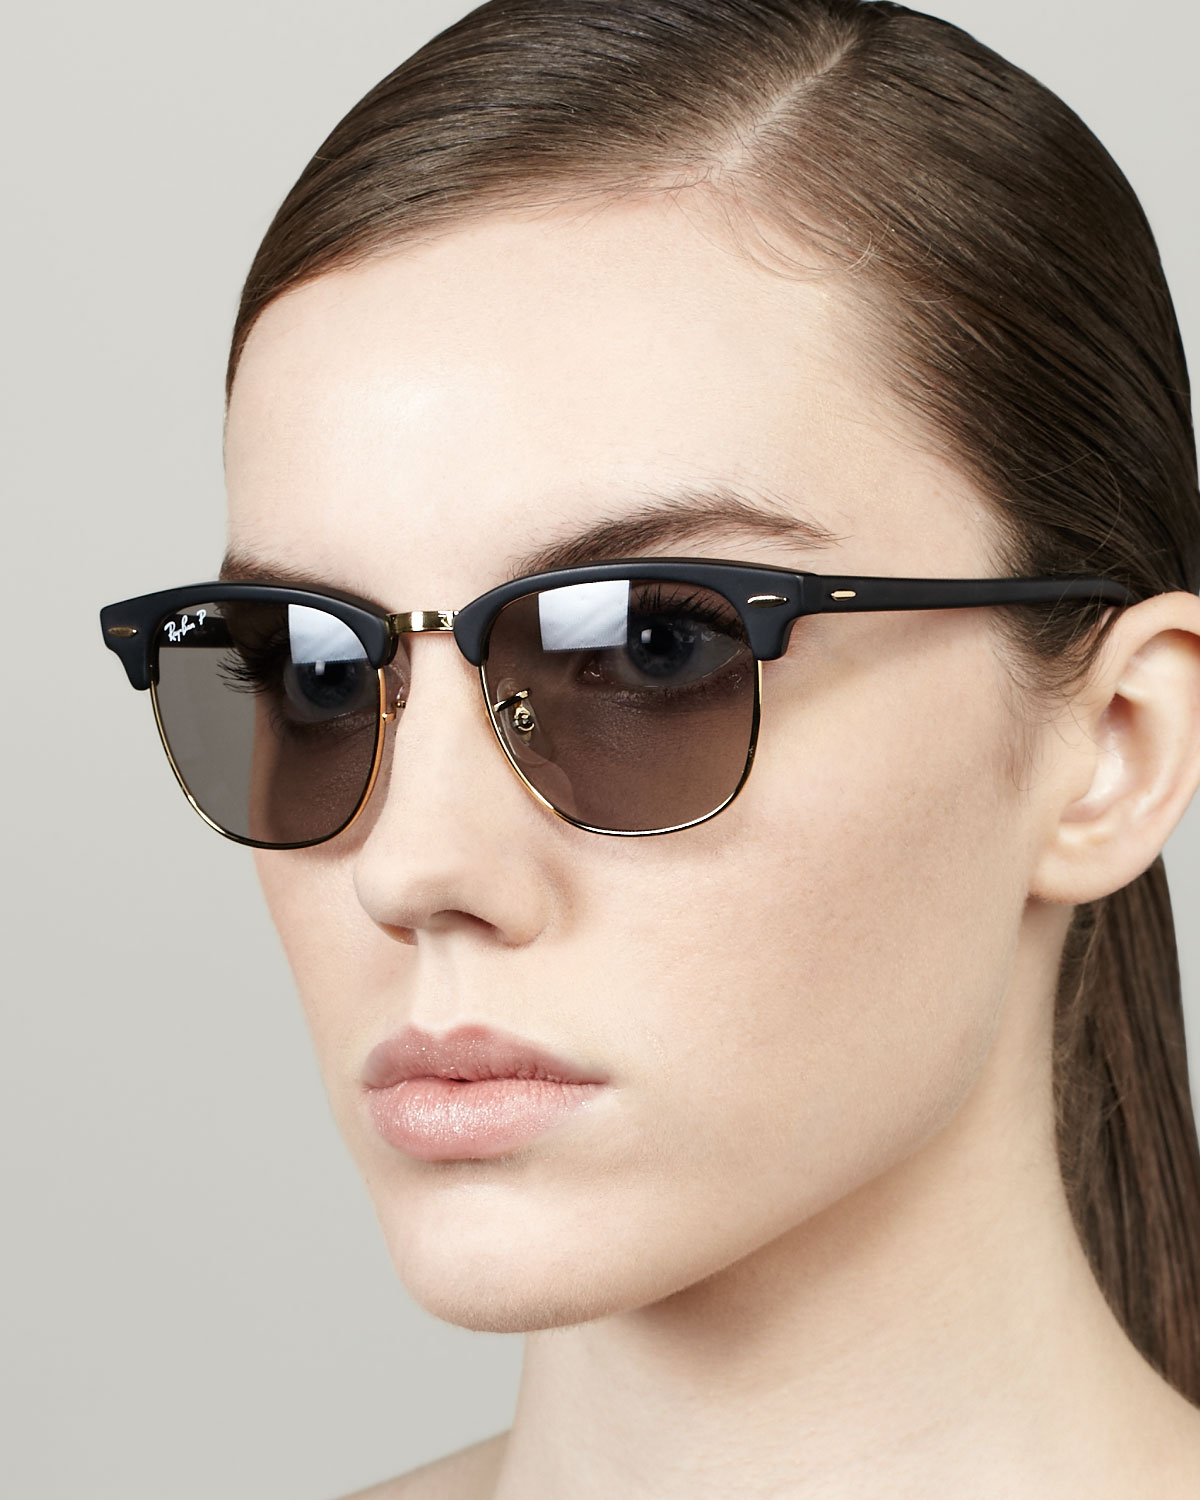 ray ban clubmaster sunglasses black and silver  gallery. previously sold at: neiman marcus, bergdorf goodman · women's clubmaster sunglasses women's ray ban clubmaster